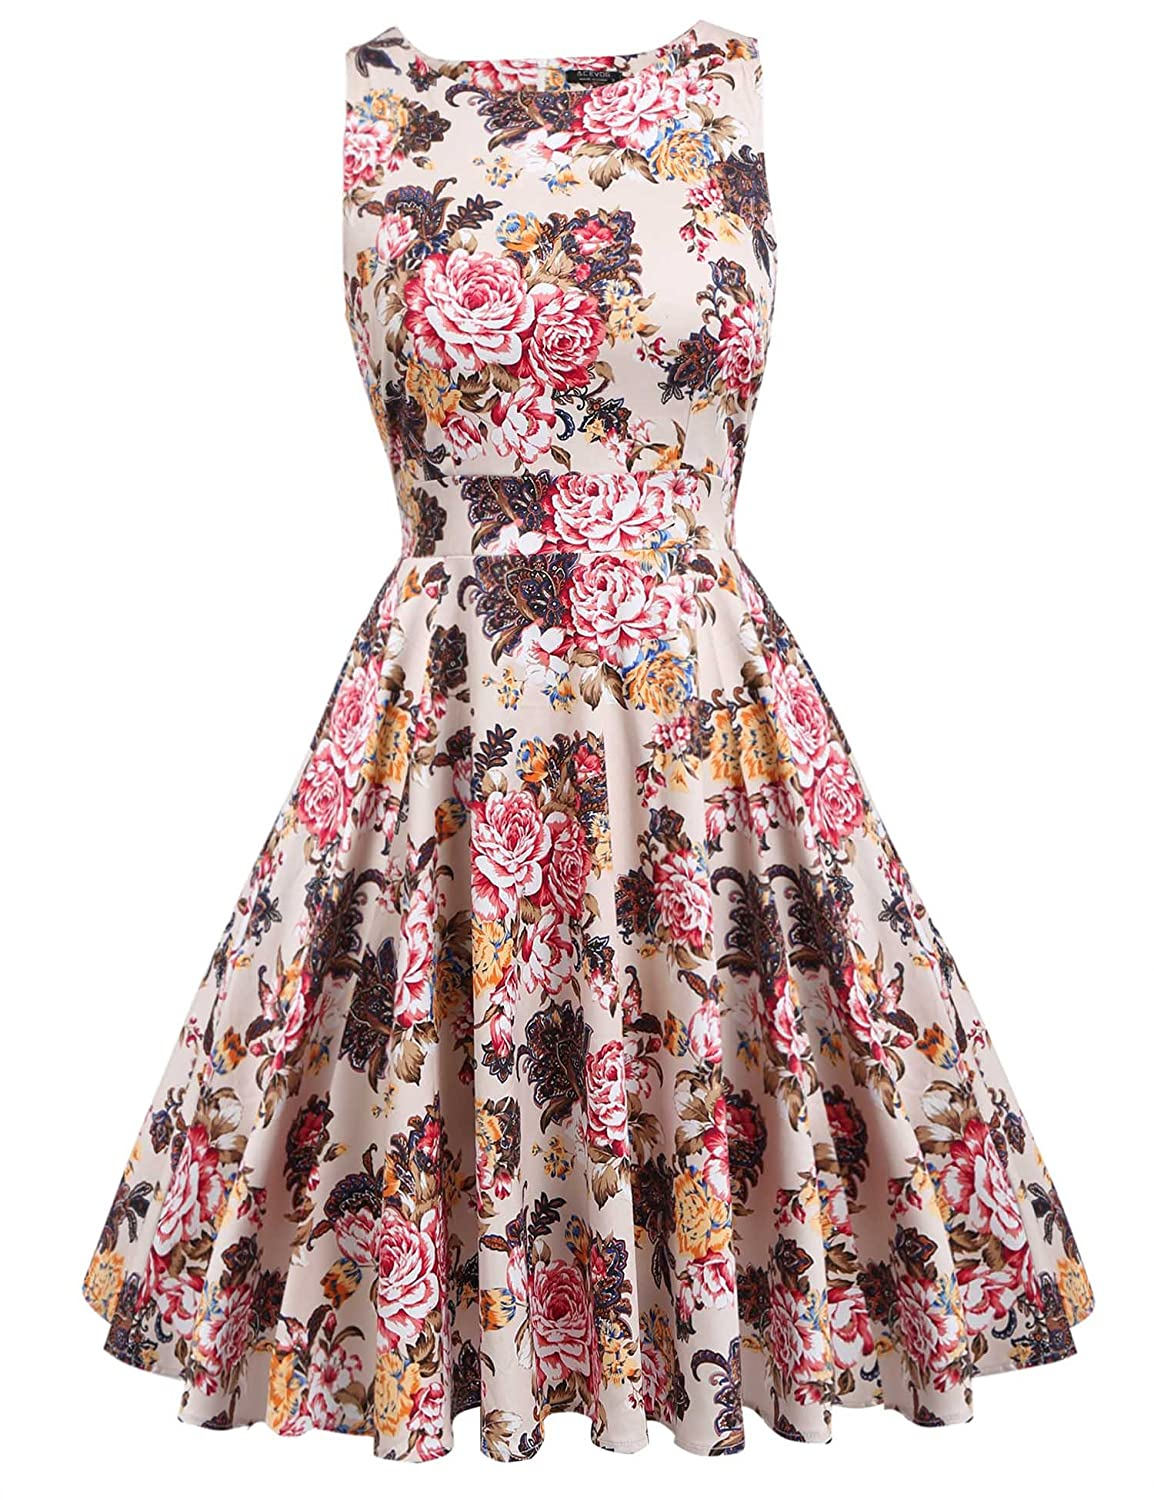 ACEVOG Vintage 1950's Floral Spring Garden Party Picnic Dress Party Cocktail Dress